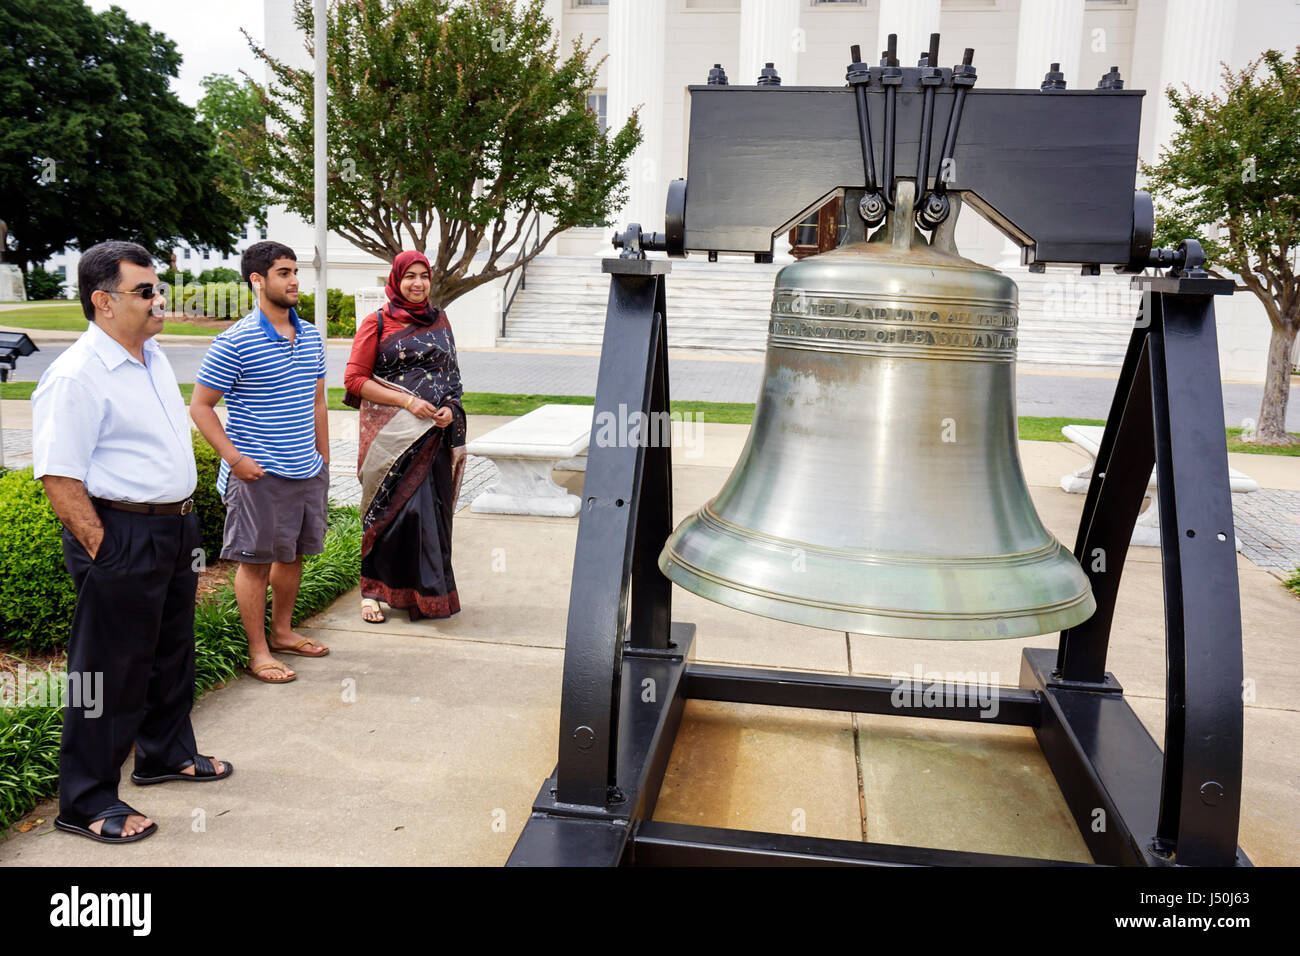 Alabama,Montgomery County,Montgomery,State Capitol building,Liberty Bell replica,Asians ethnic ethnics family families parent parents child children,M Stock Photo